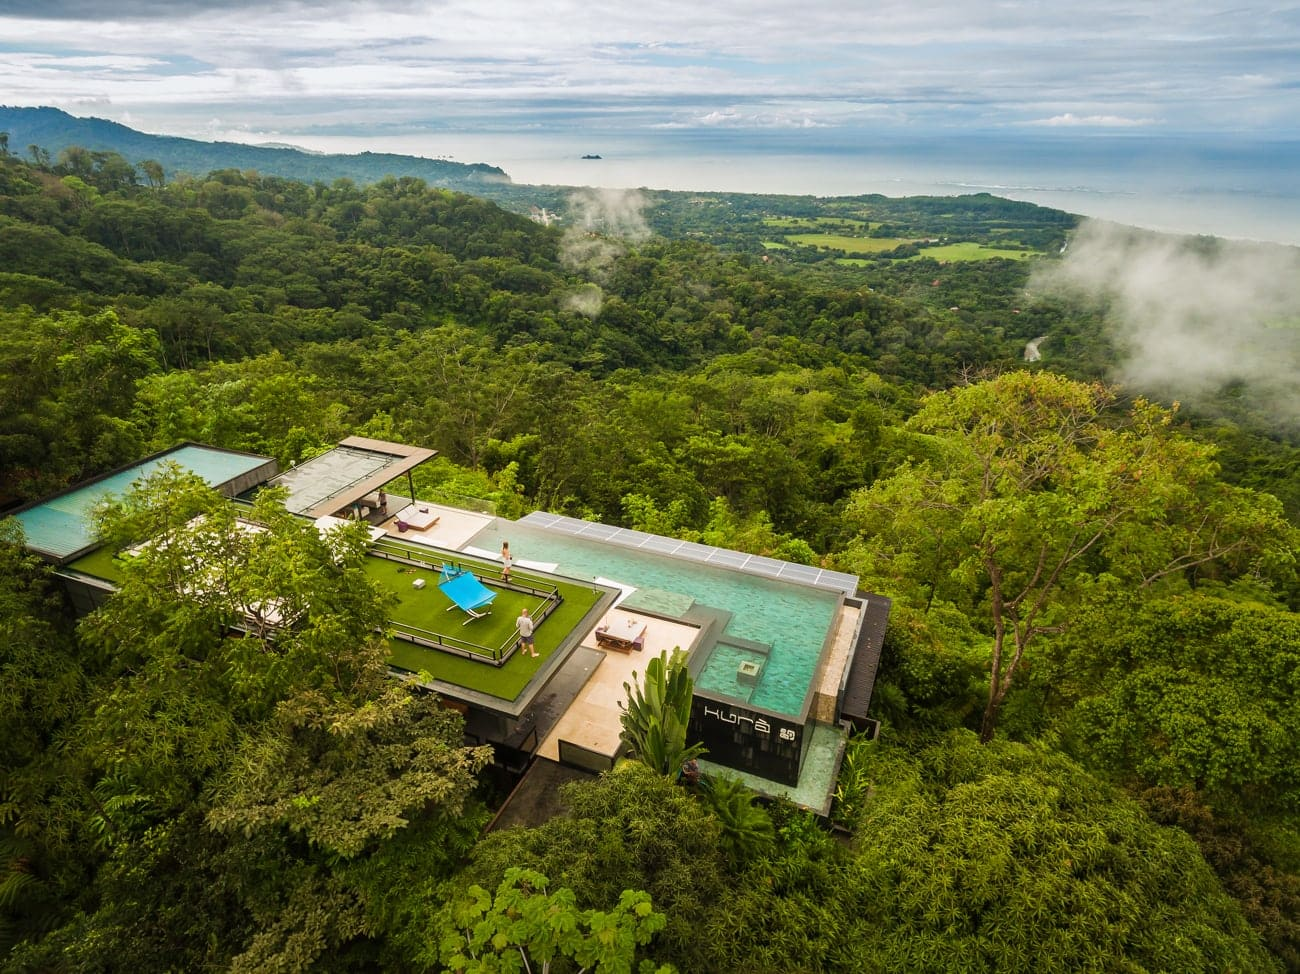 Arial view of Kura on hilltop in rainforest in Costa Rica with Pacific Ocean in the background.